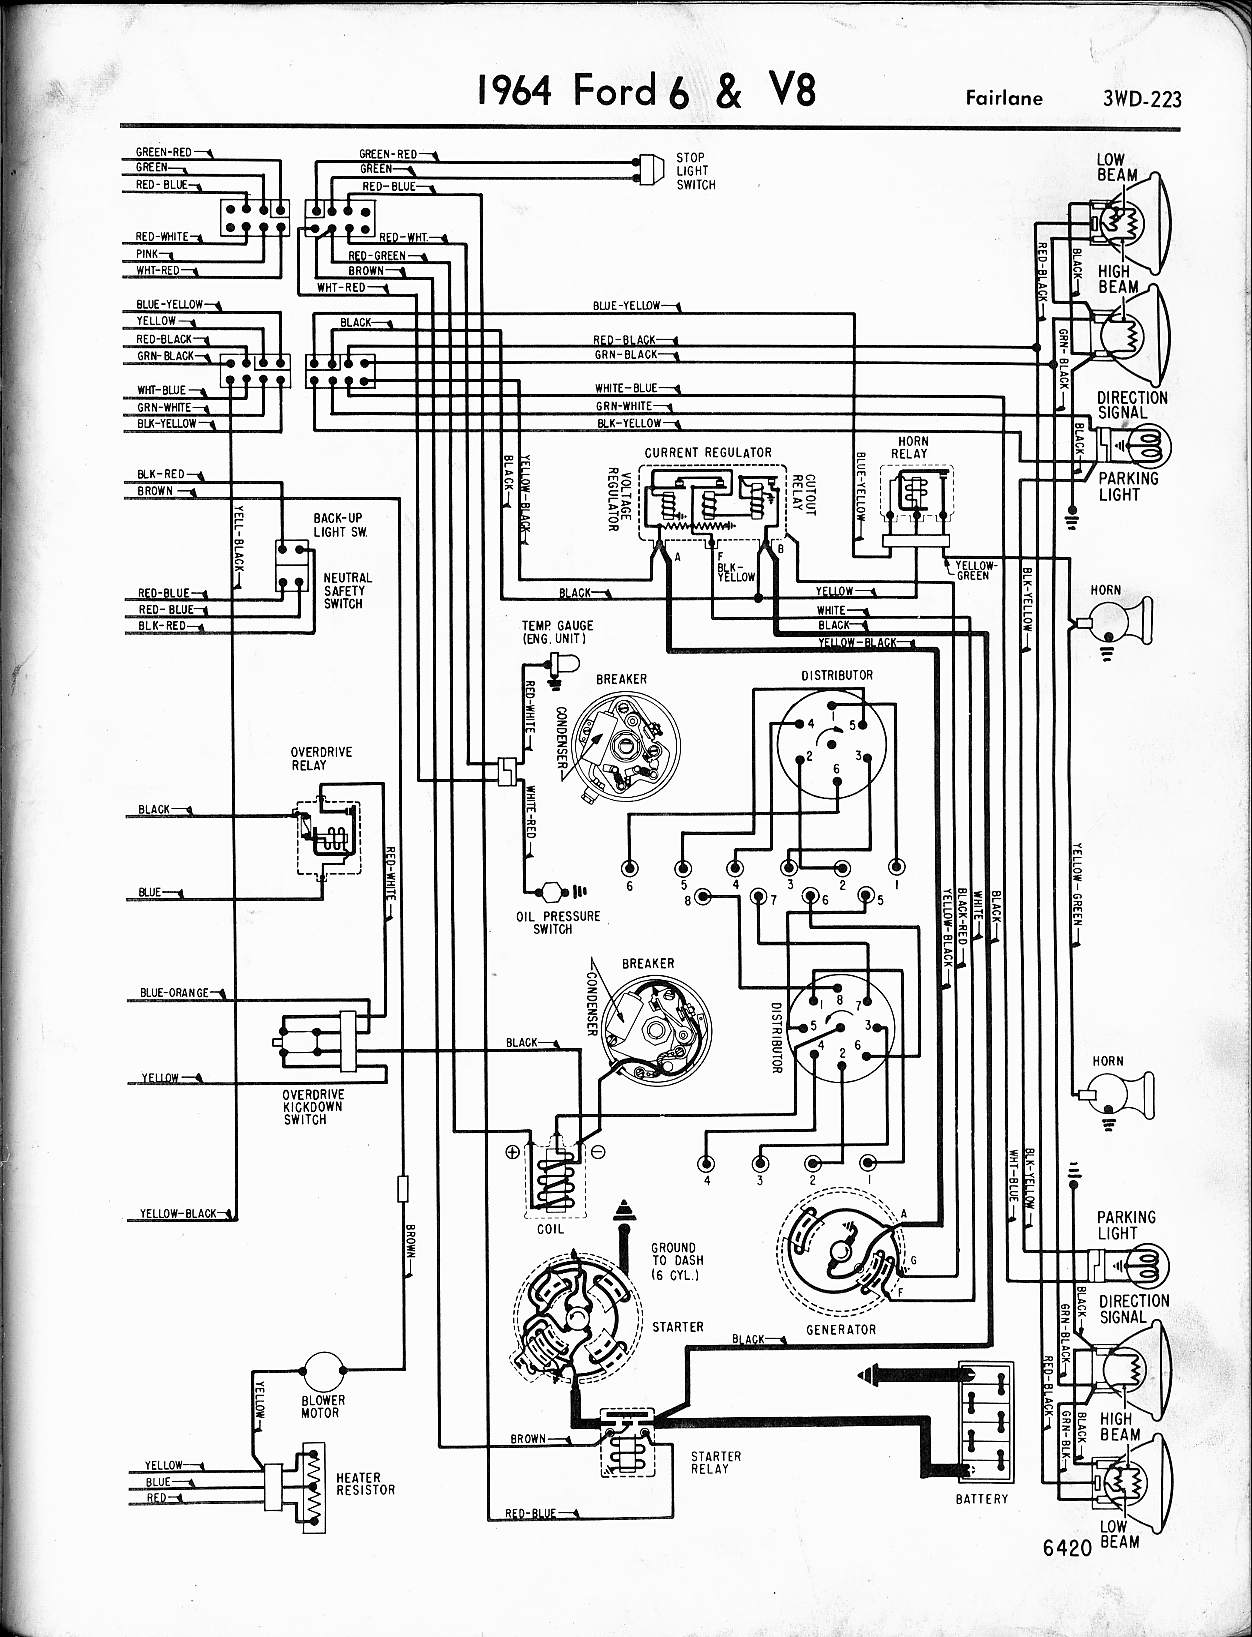 56 ford fairlane wiring diagram (update) 1964 ford fairlane 500 v8 with a 302 windsor ... ford nc fairlane wiring diagram #7